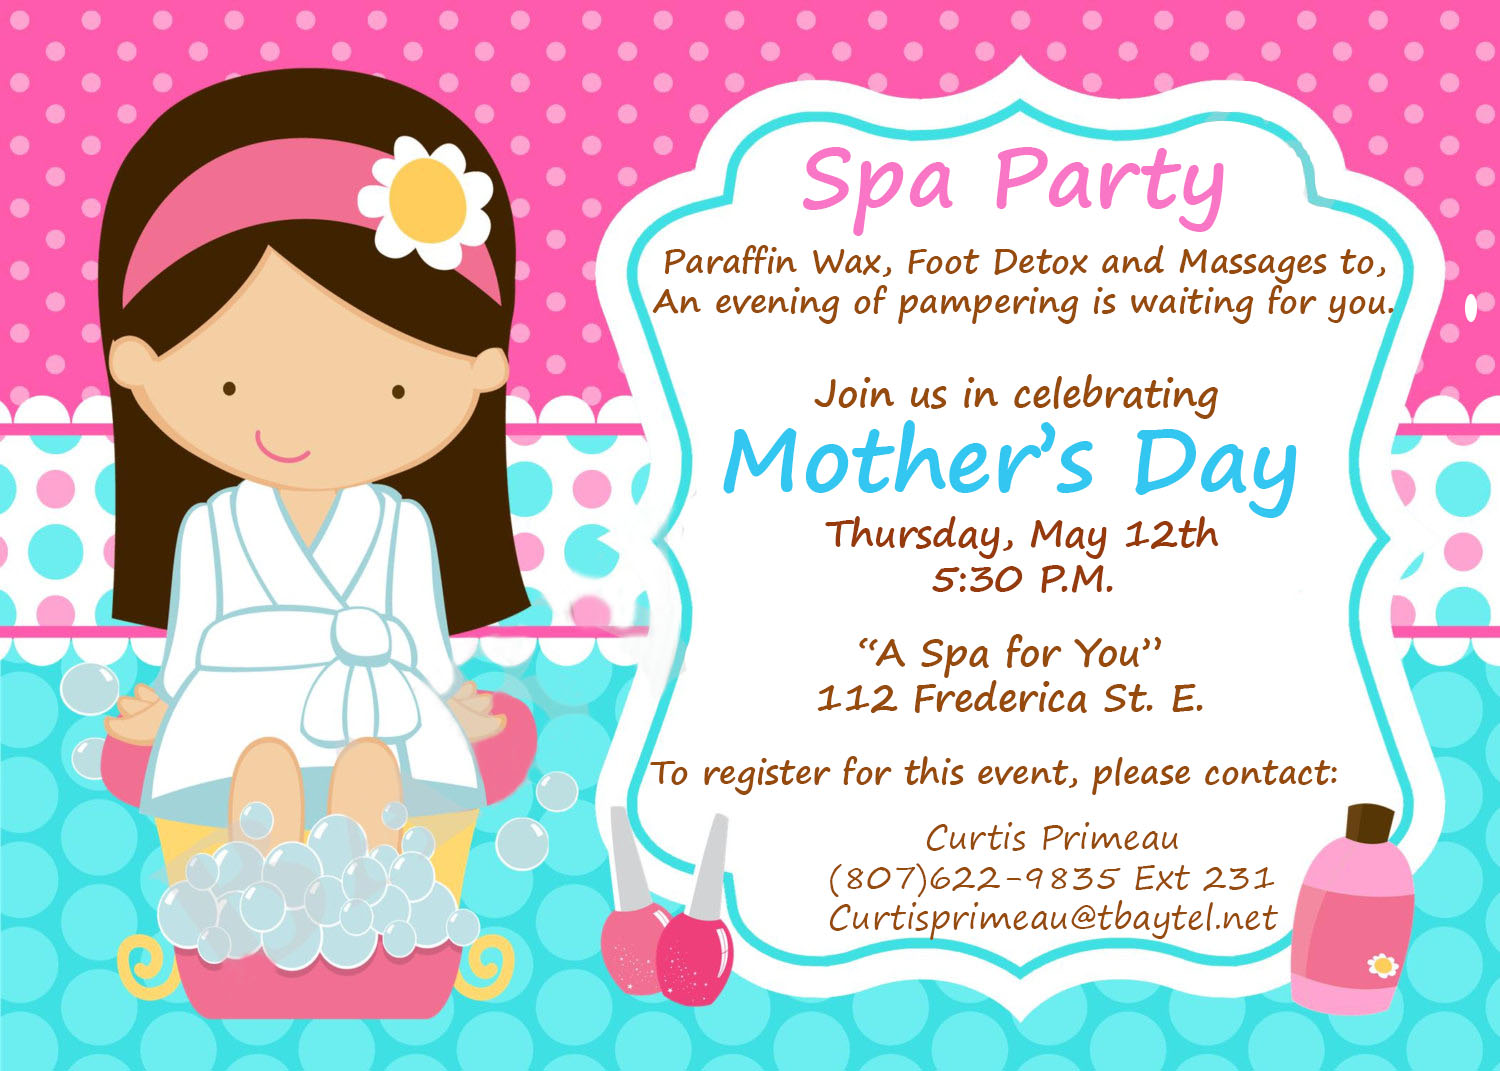 Mothers Day Spa Party 2016 - Lac des Mille Lacs First Nation